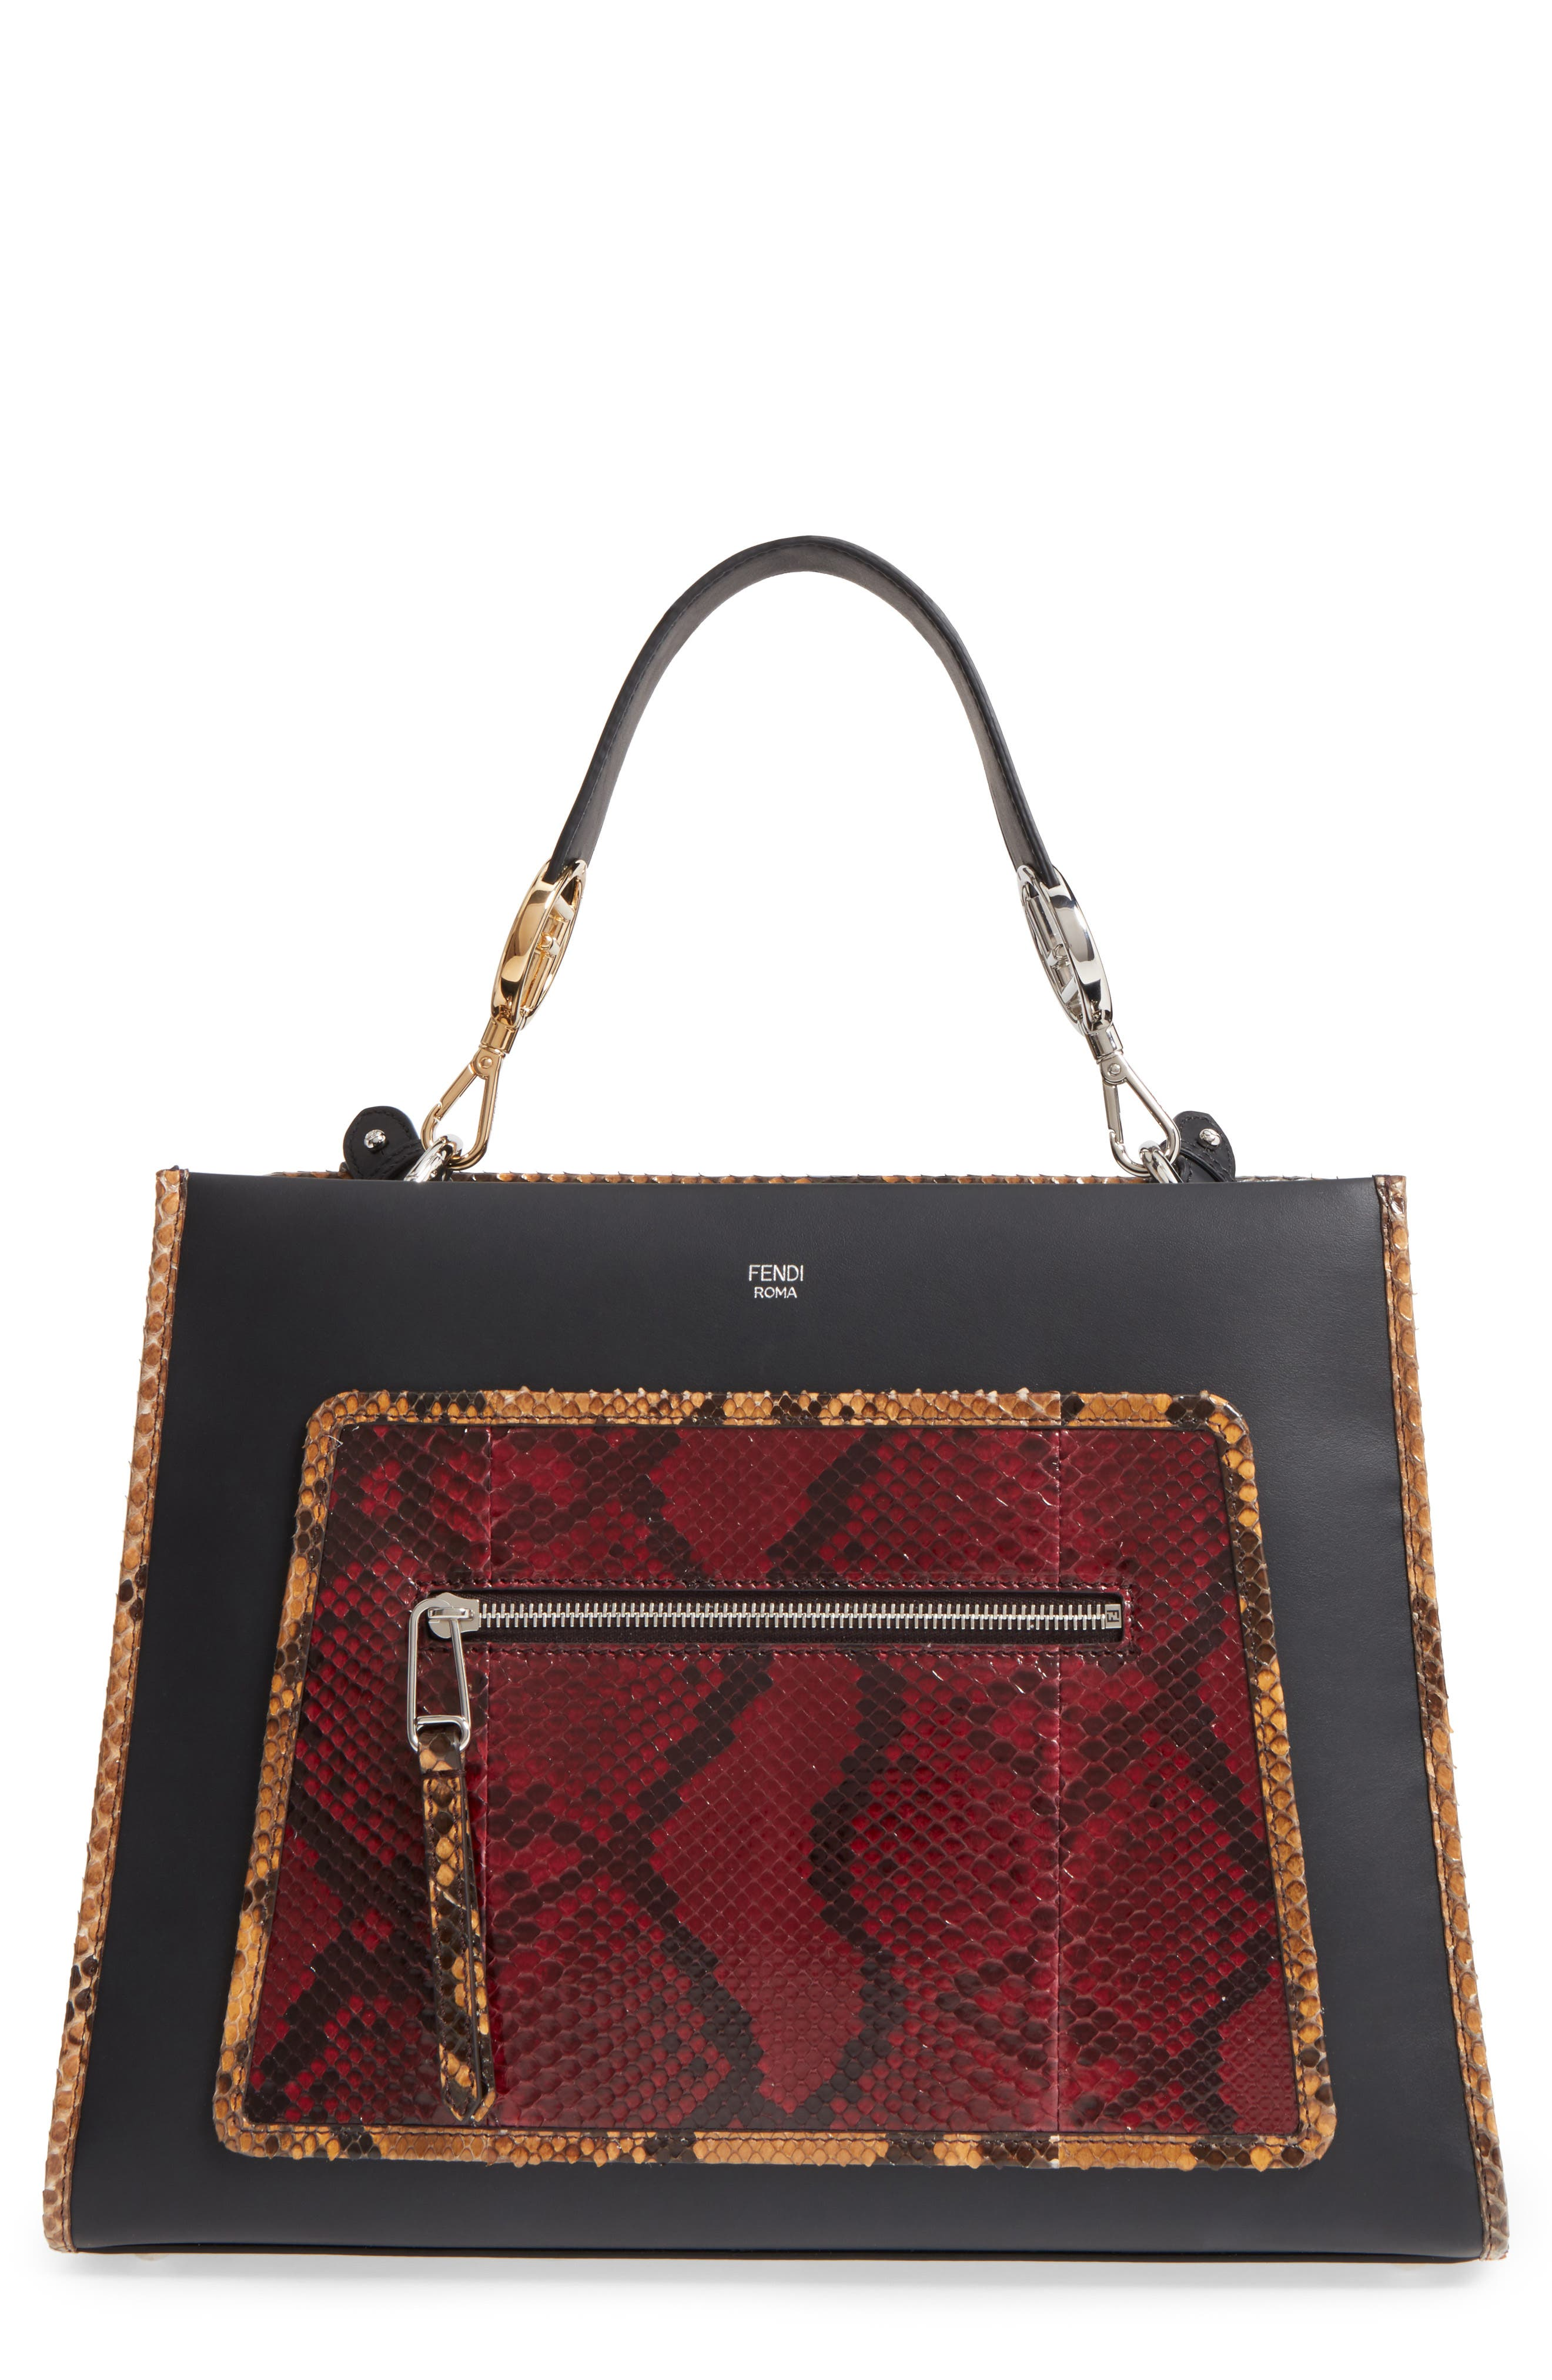 Runaway Leather & Genuine Python Tote,                             Main thumbnail 1, color,                             Black/ Multi